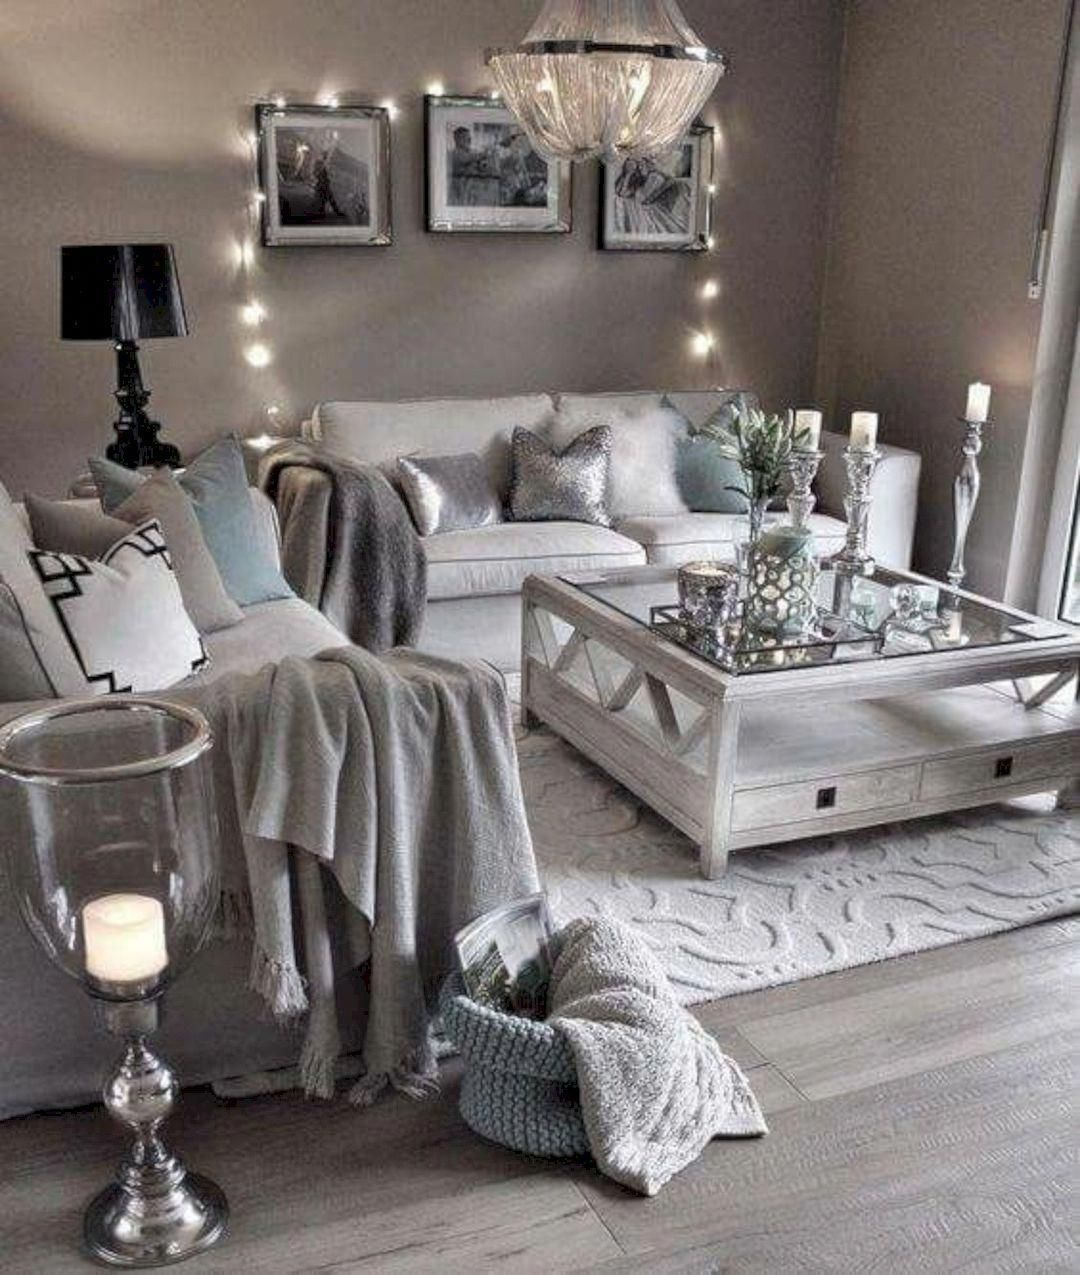 Designsforlivingroom Chic Apartment Decor Shabby Living Room Studio